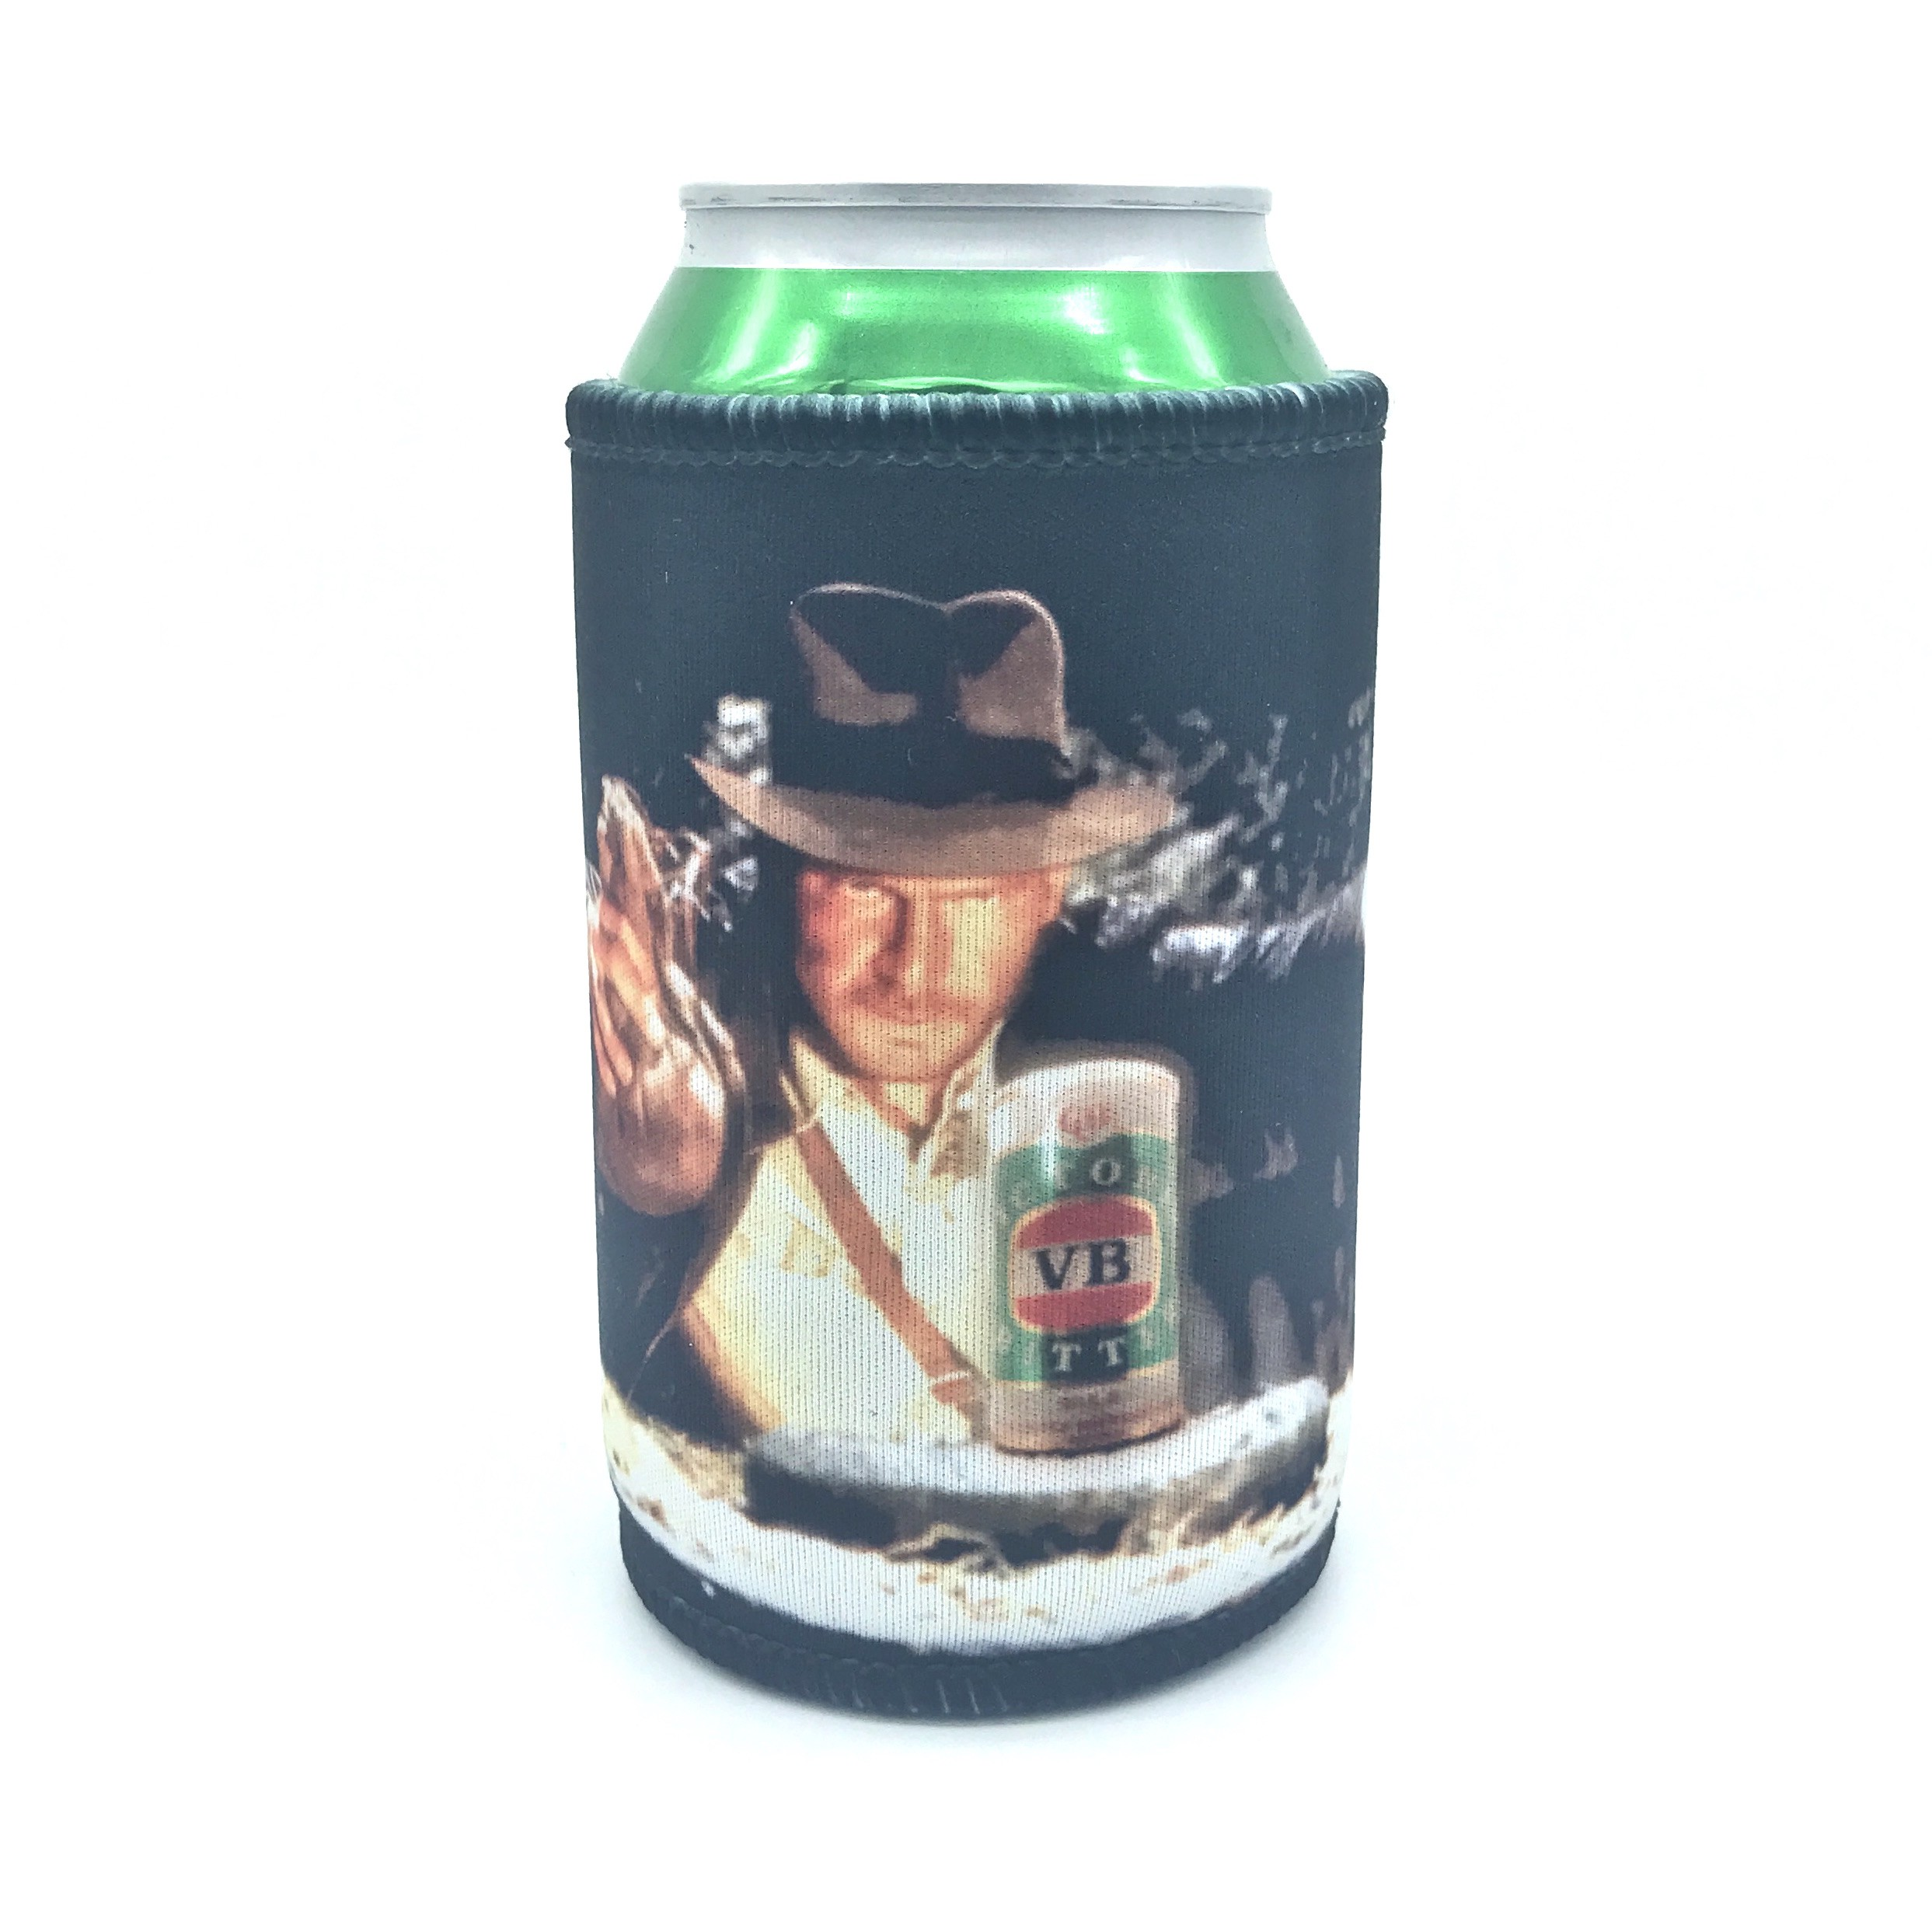 TINDIANA JONES STUBBY HOLDER